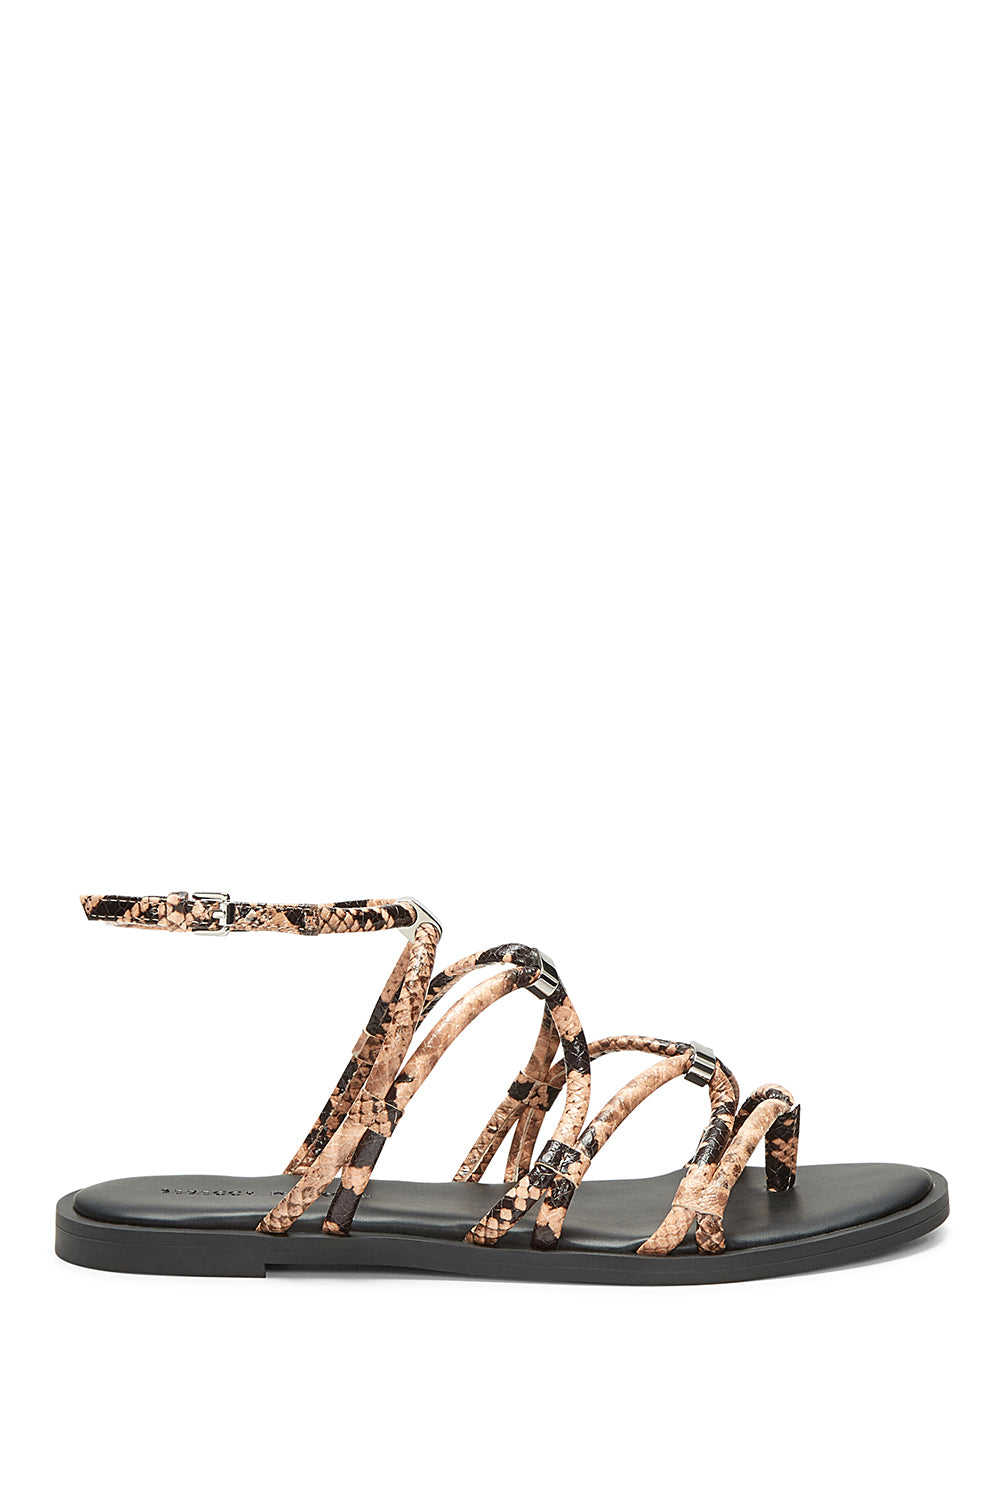 Sarle Too Sandal